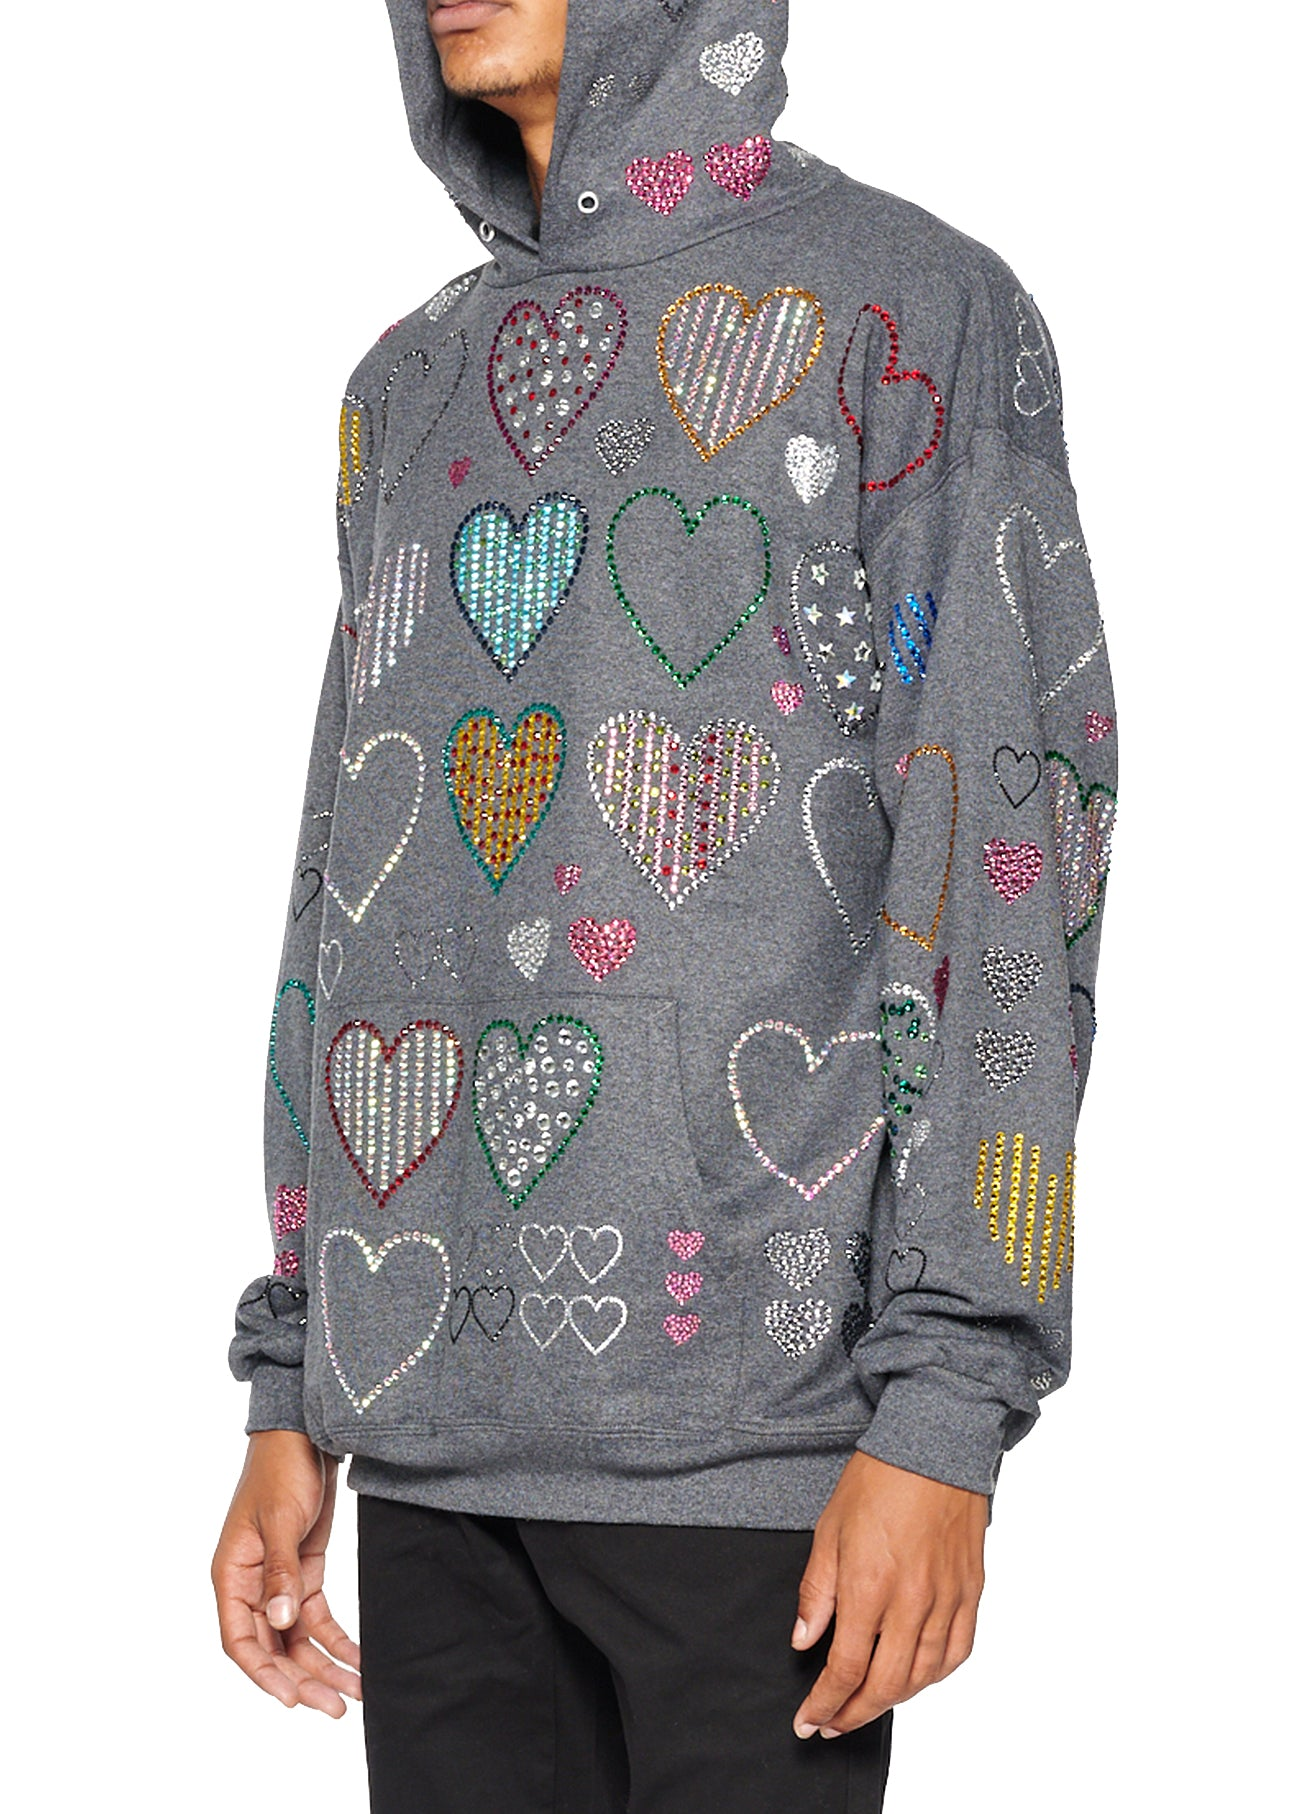 ALLOVER HEARTS GREY HOODIE PULLOVER SWEATSHIRT - Men's Jackets & Coats - Libertine